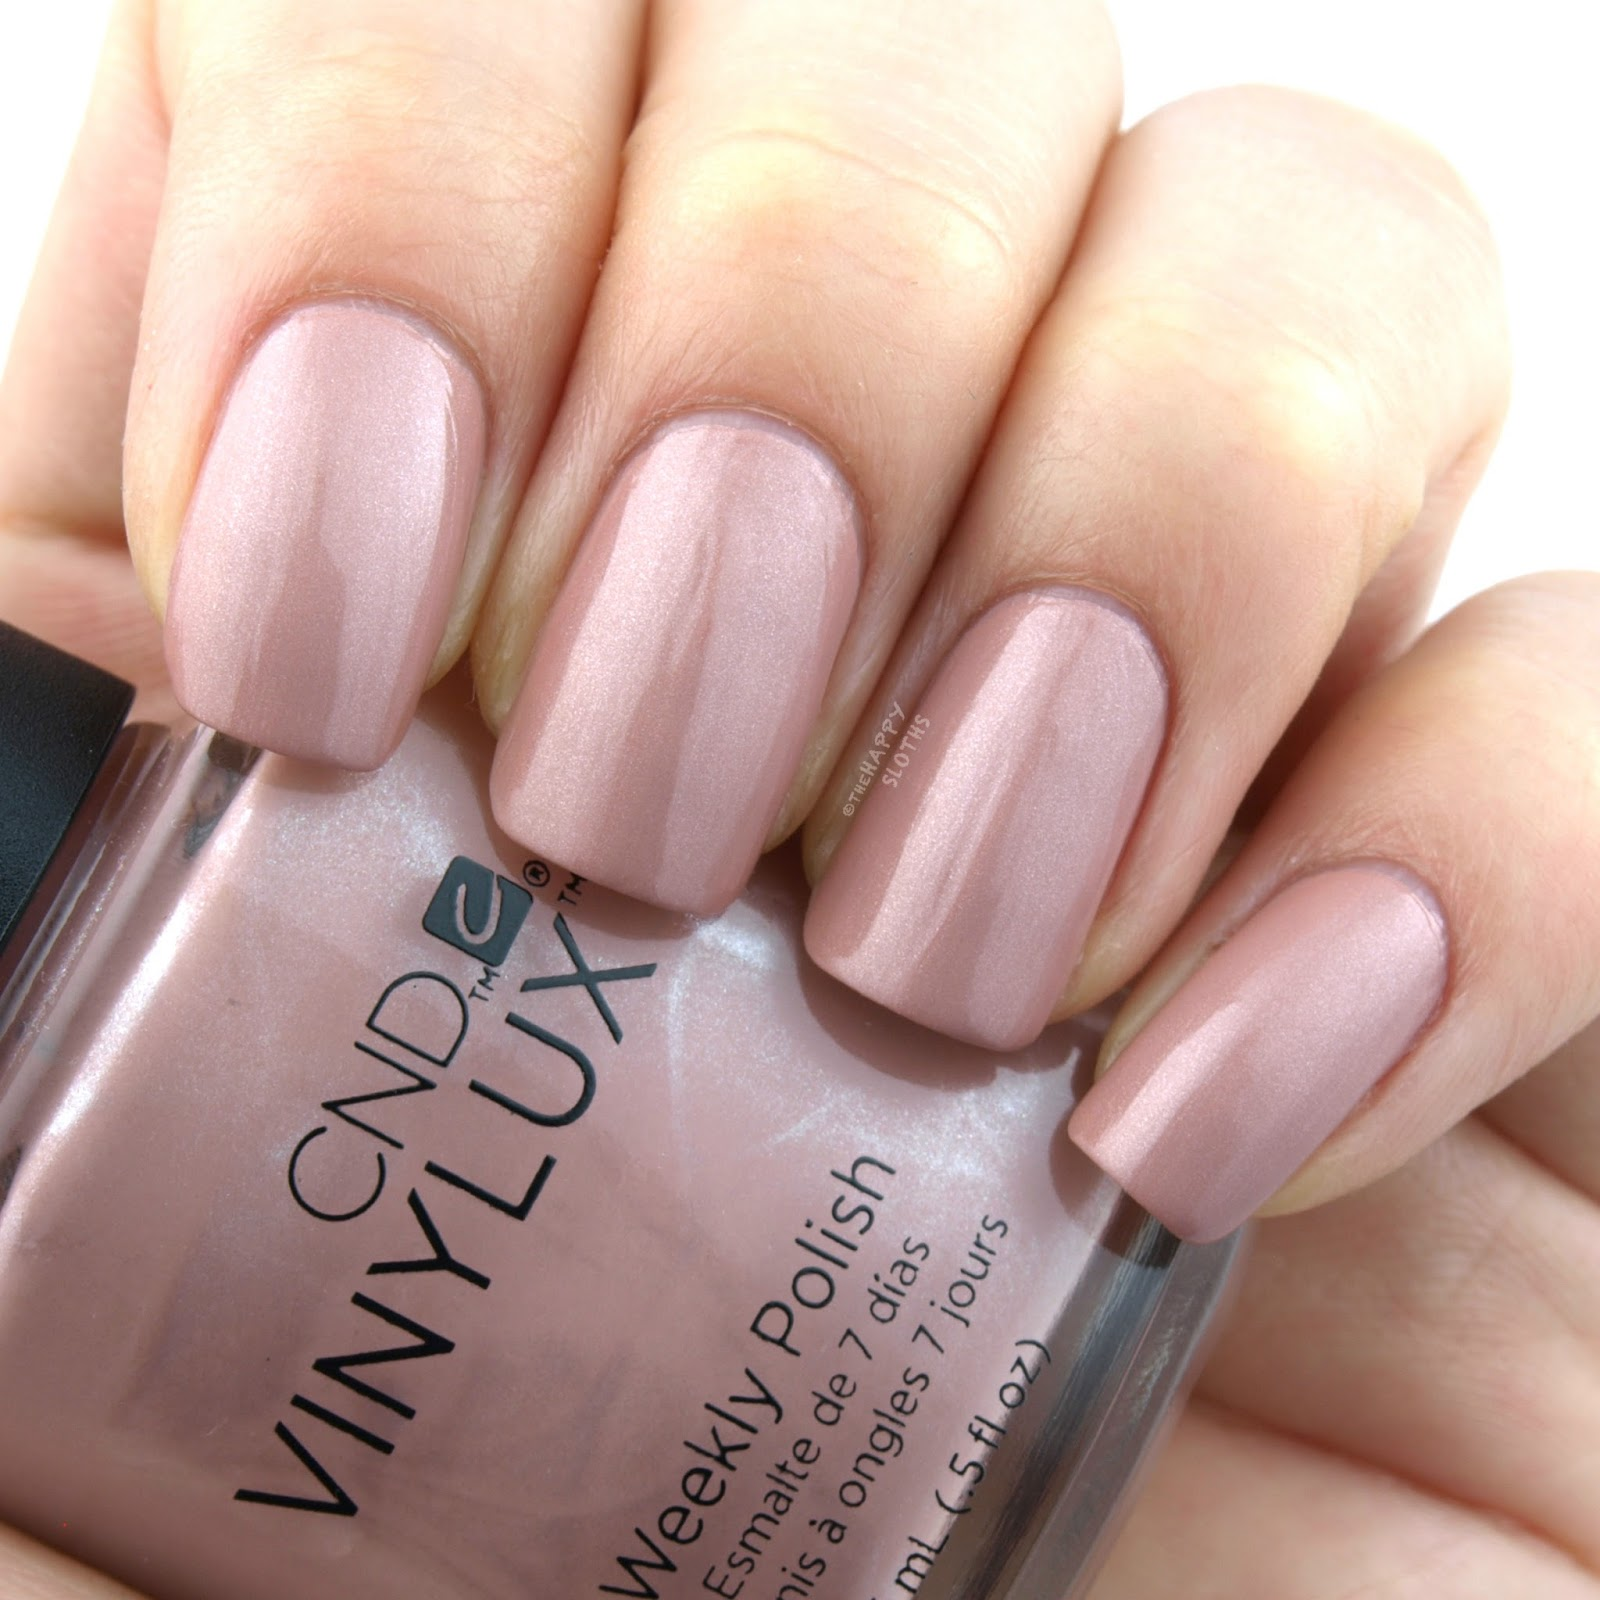 CND Vinylux Intimates Collection   Satin Pajamas: Review and Swatches